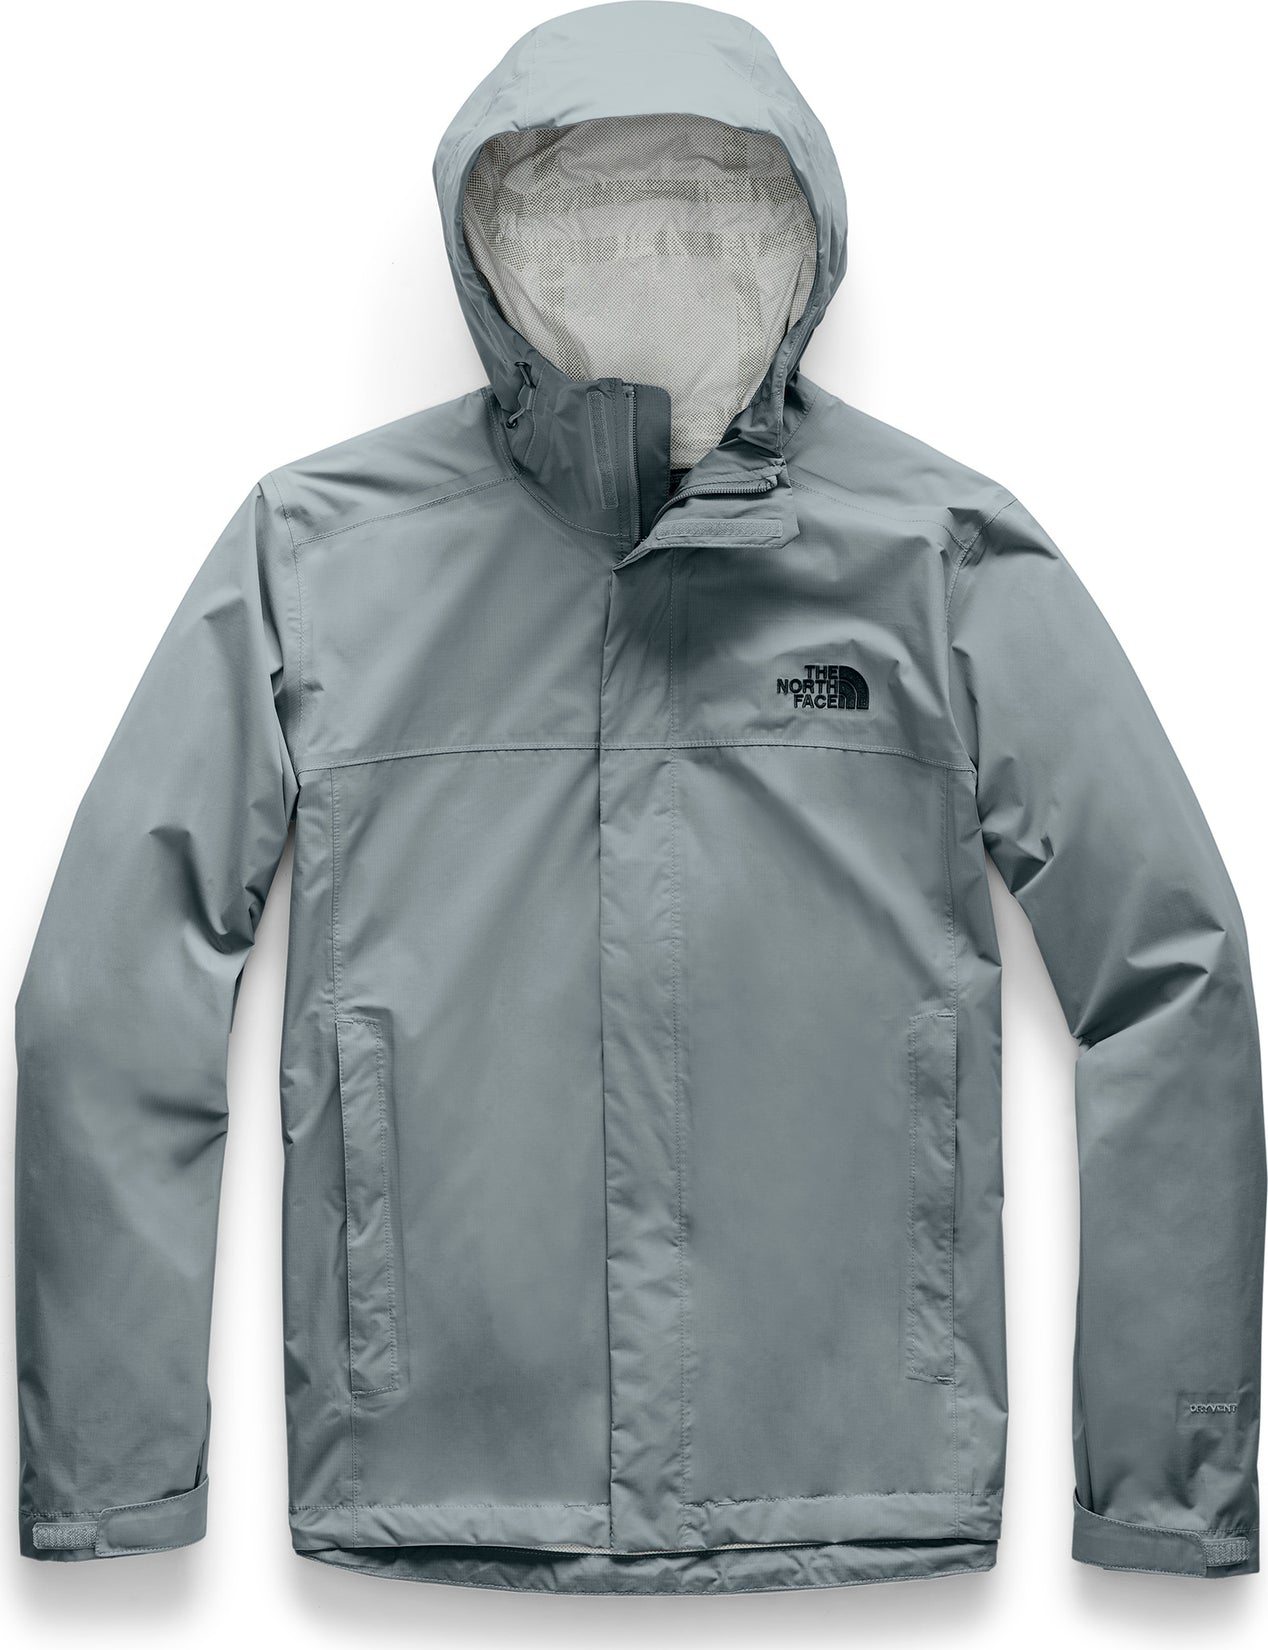 b2b7cef7c The North Face Venture 2 Jacket - Men's